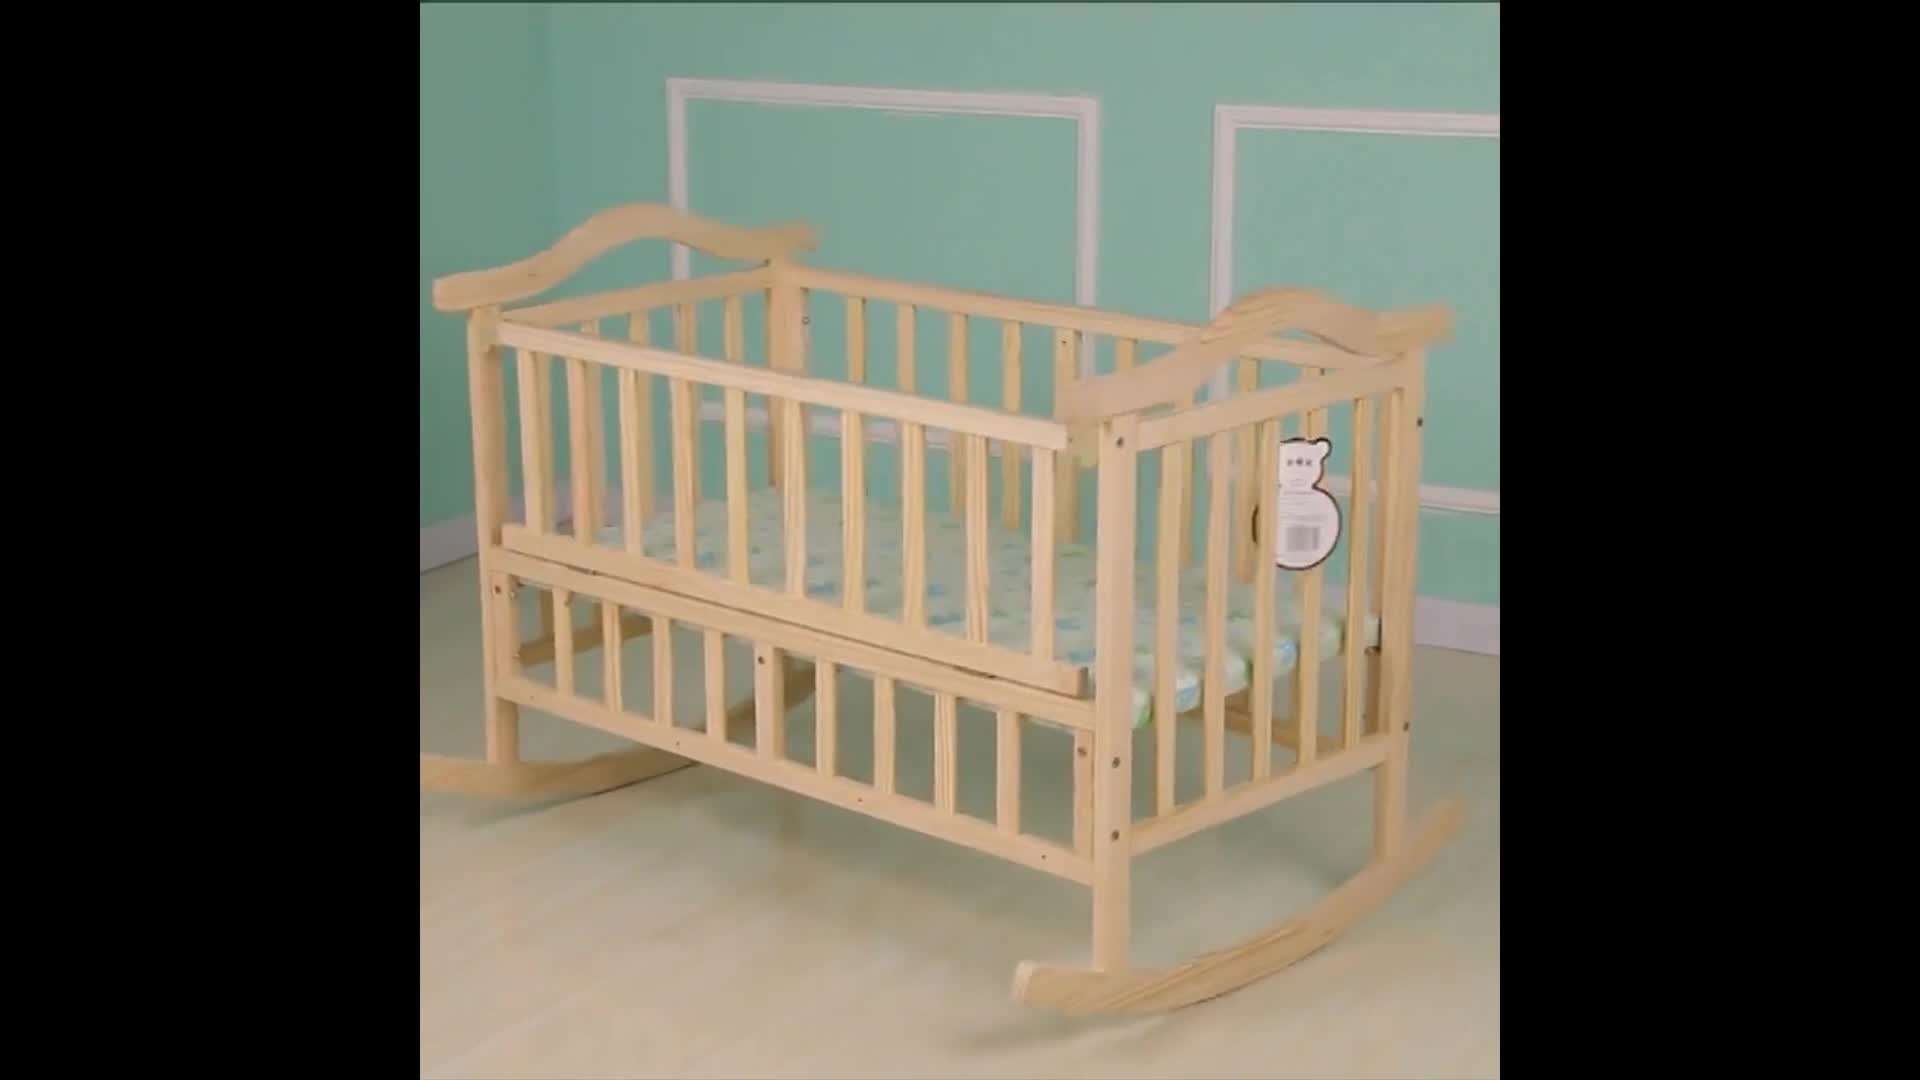 Smoothly and safty lock baby crib dimensions baby royal bed/baby bedside cribs